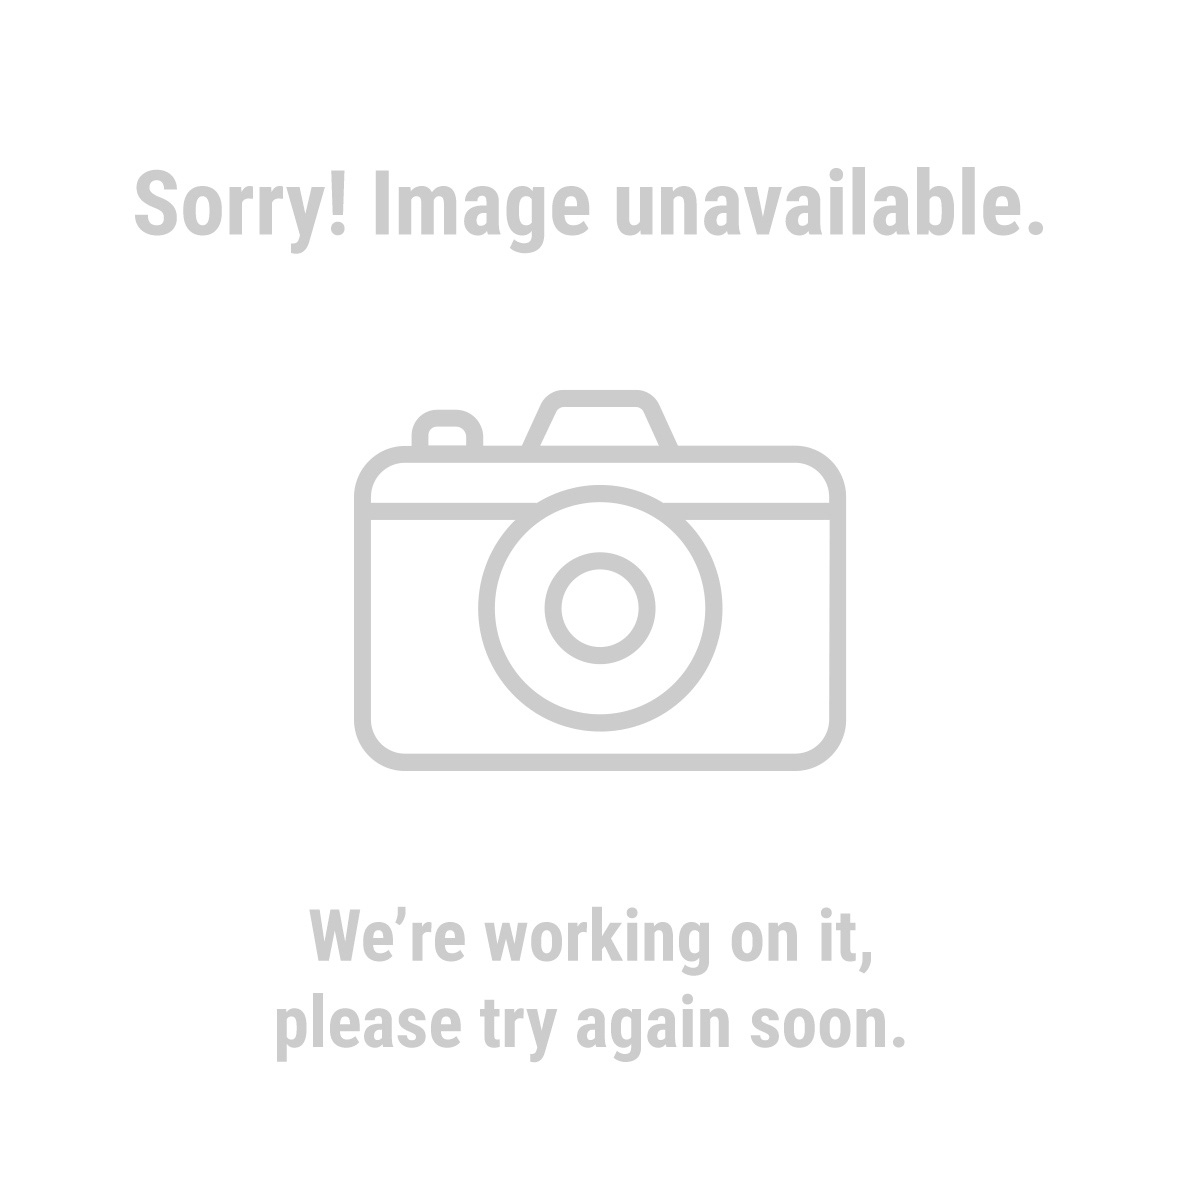 "Haul-Master 96691 10"" Worry Free Tire"